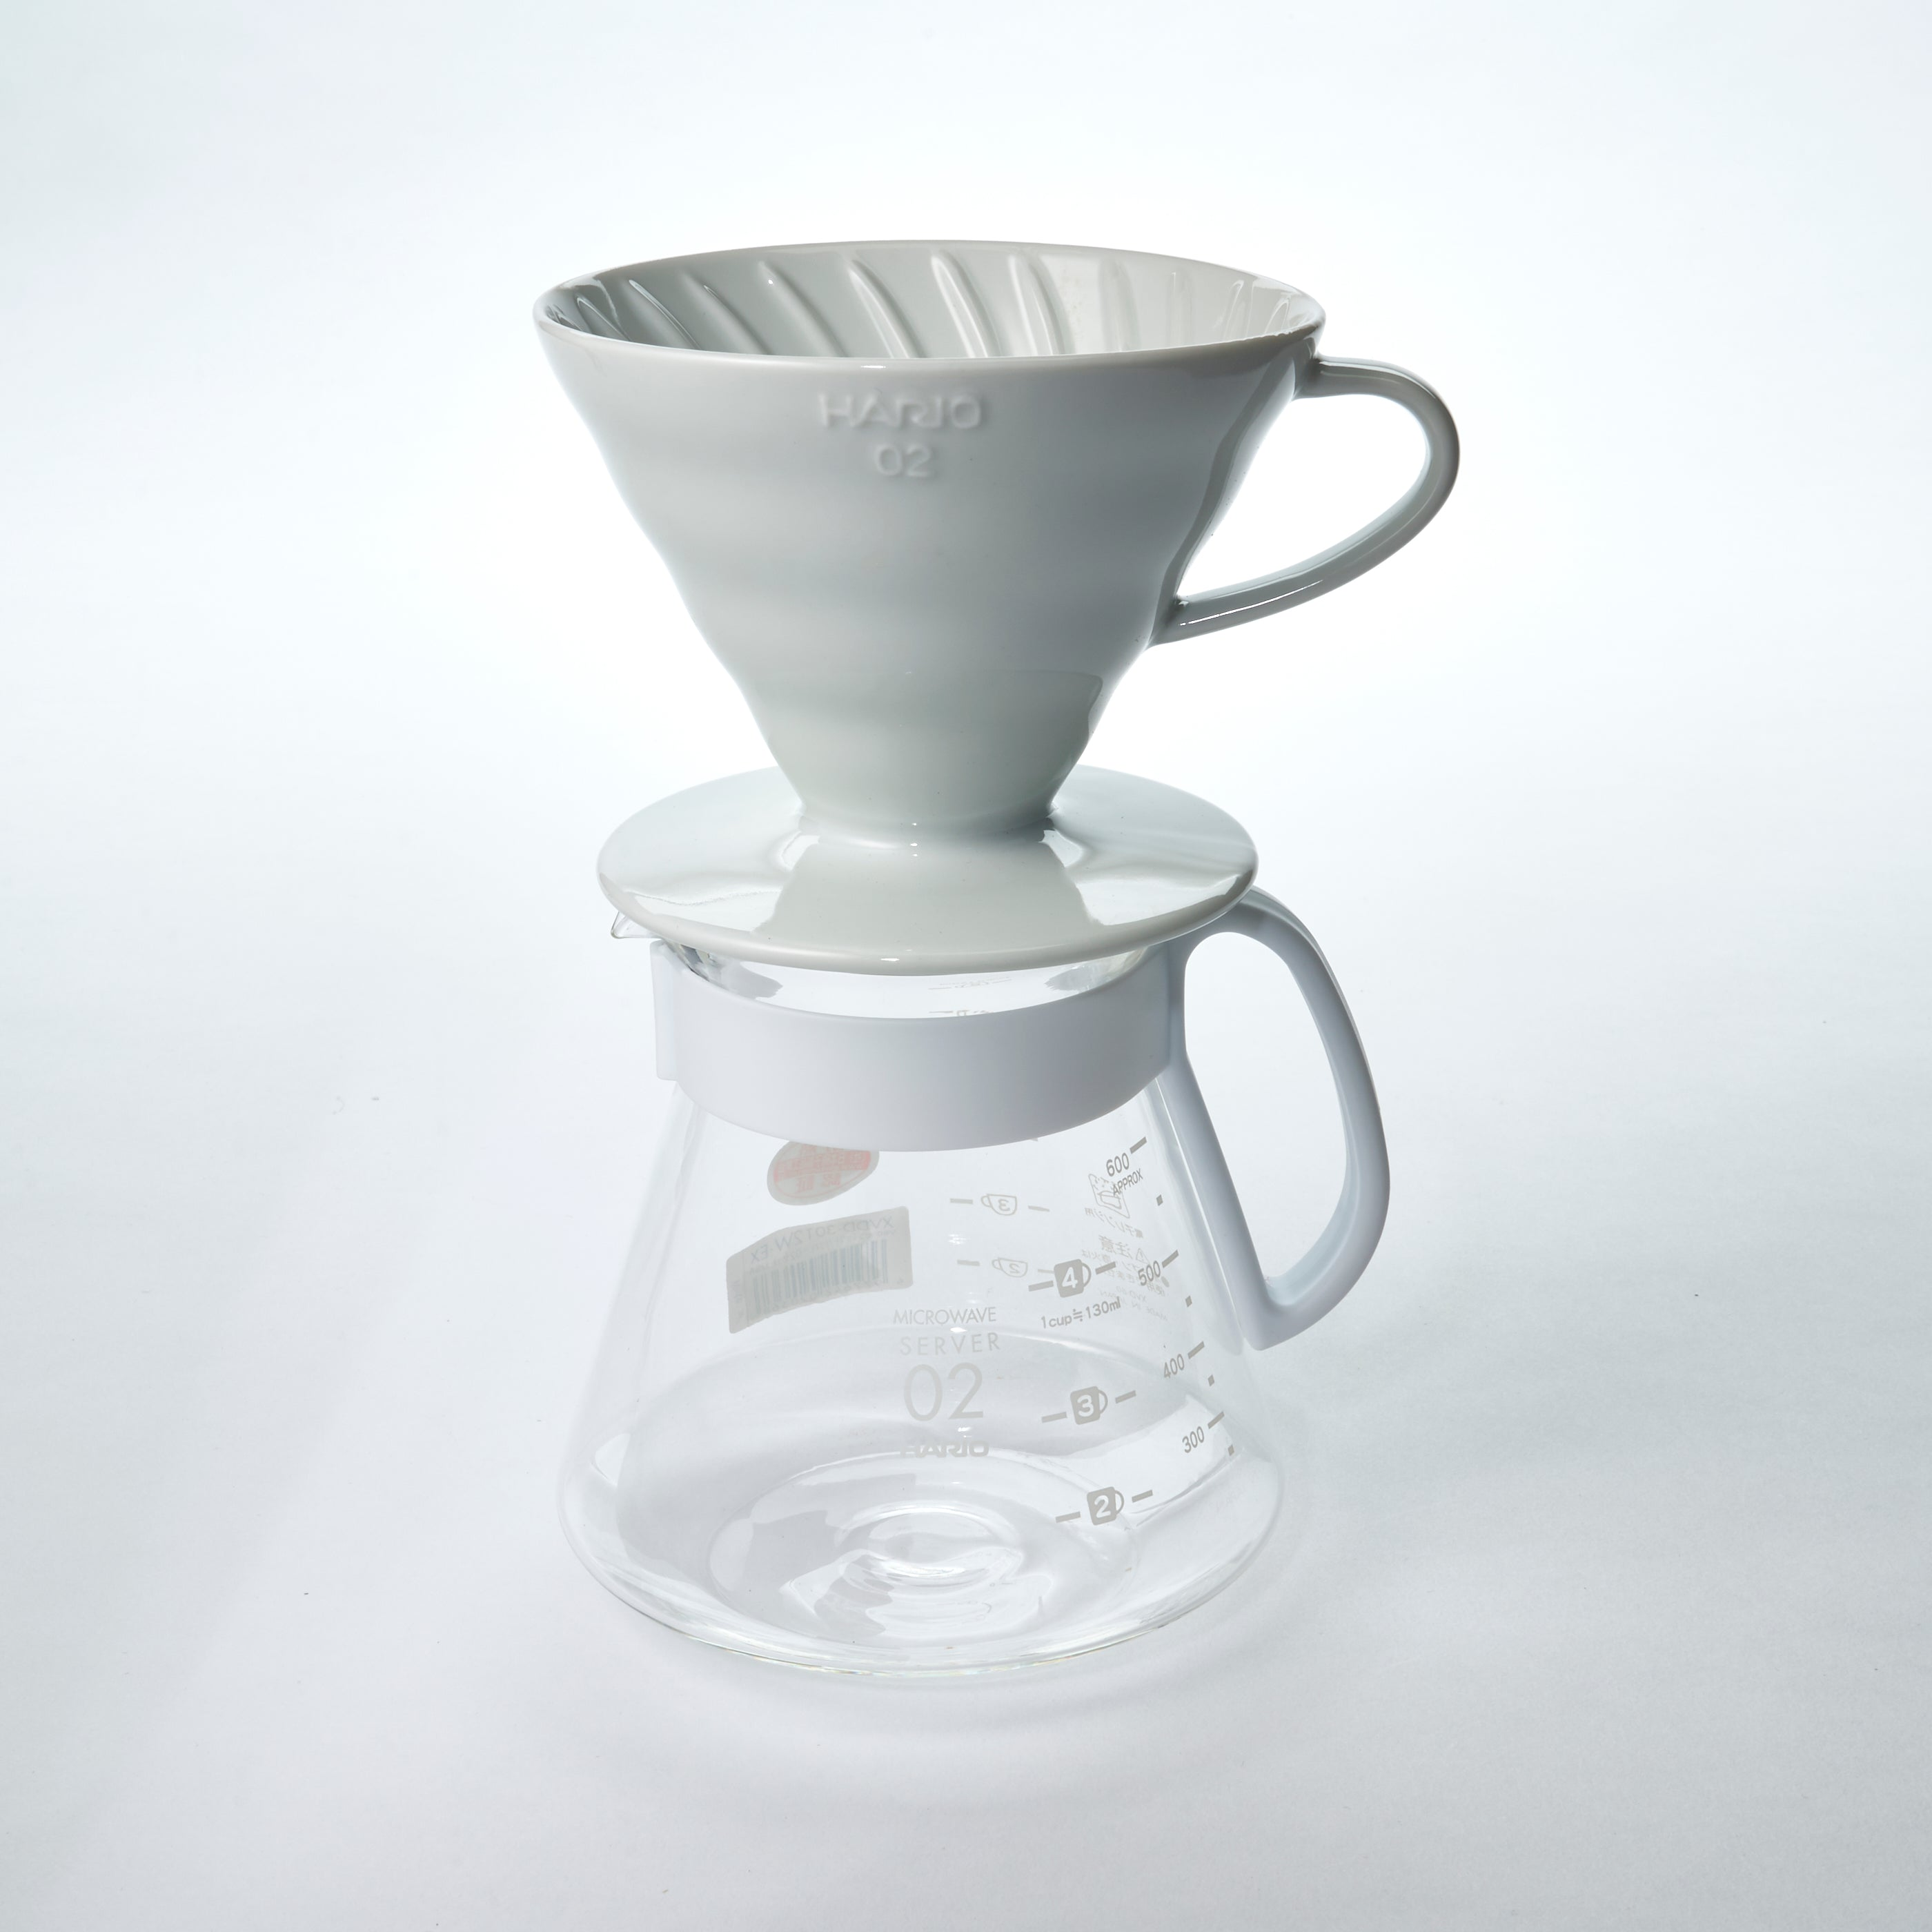 Hario V60 Ceramic 02 Dripper Set 600ml